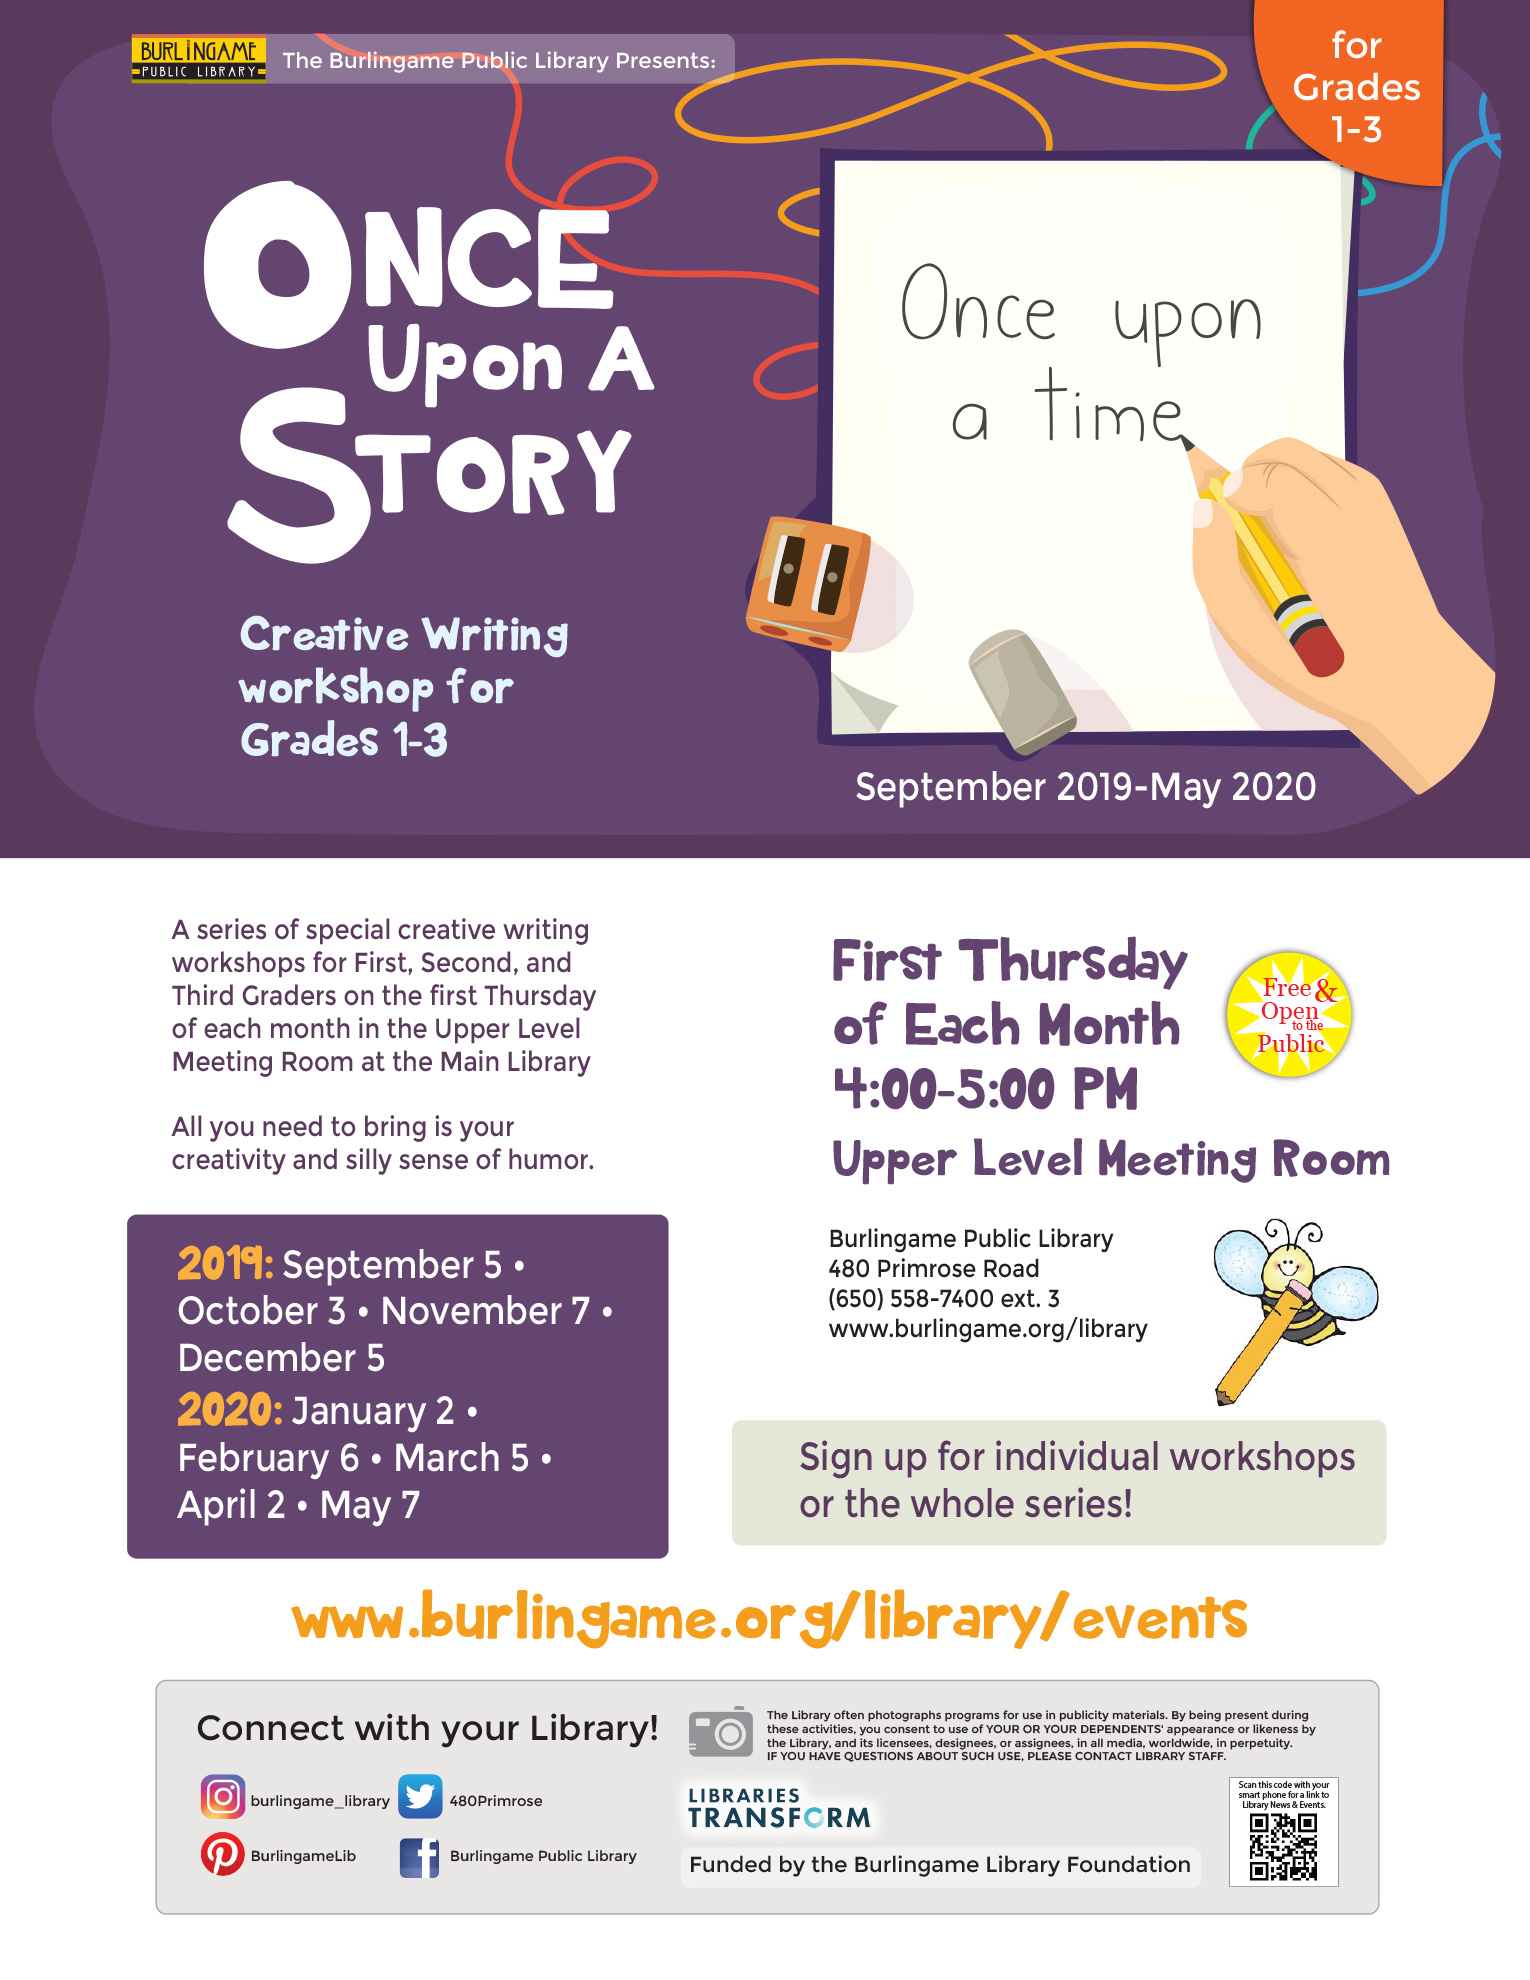 Once Upon a Story Creative Writing Workshop